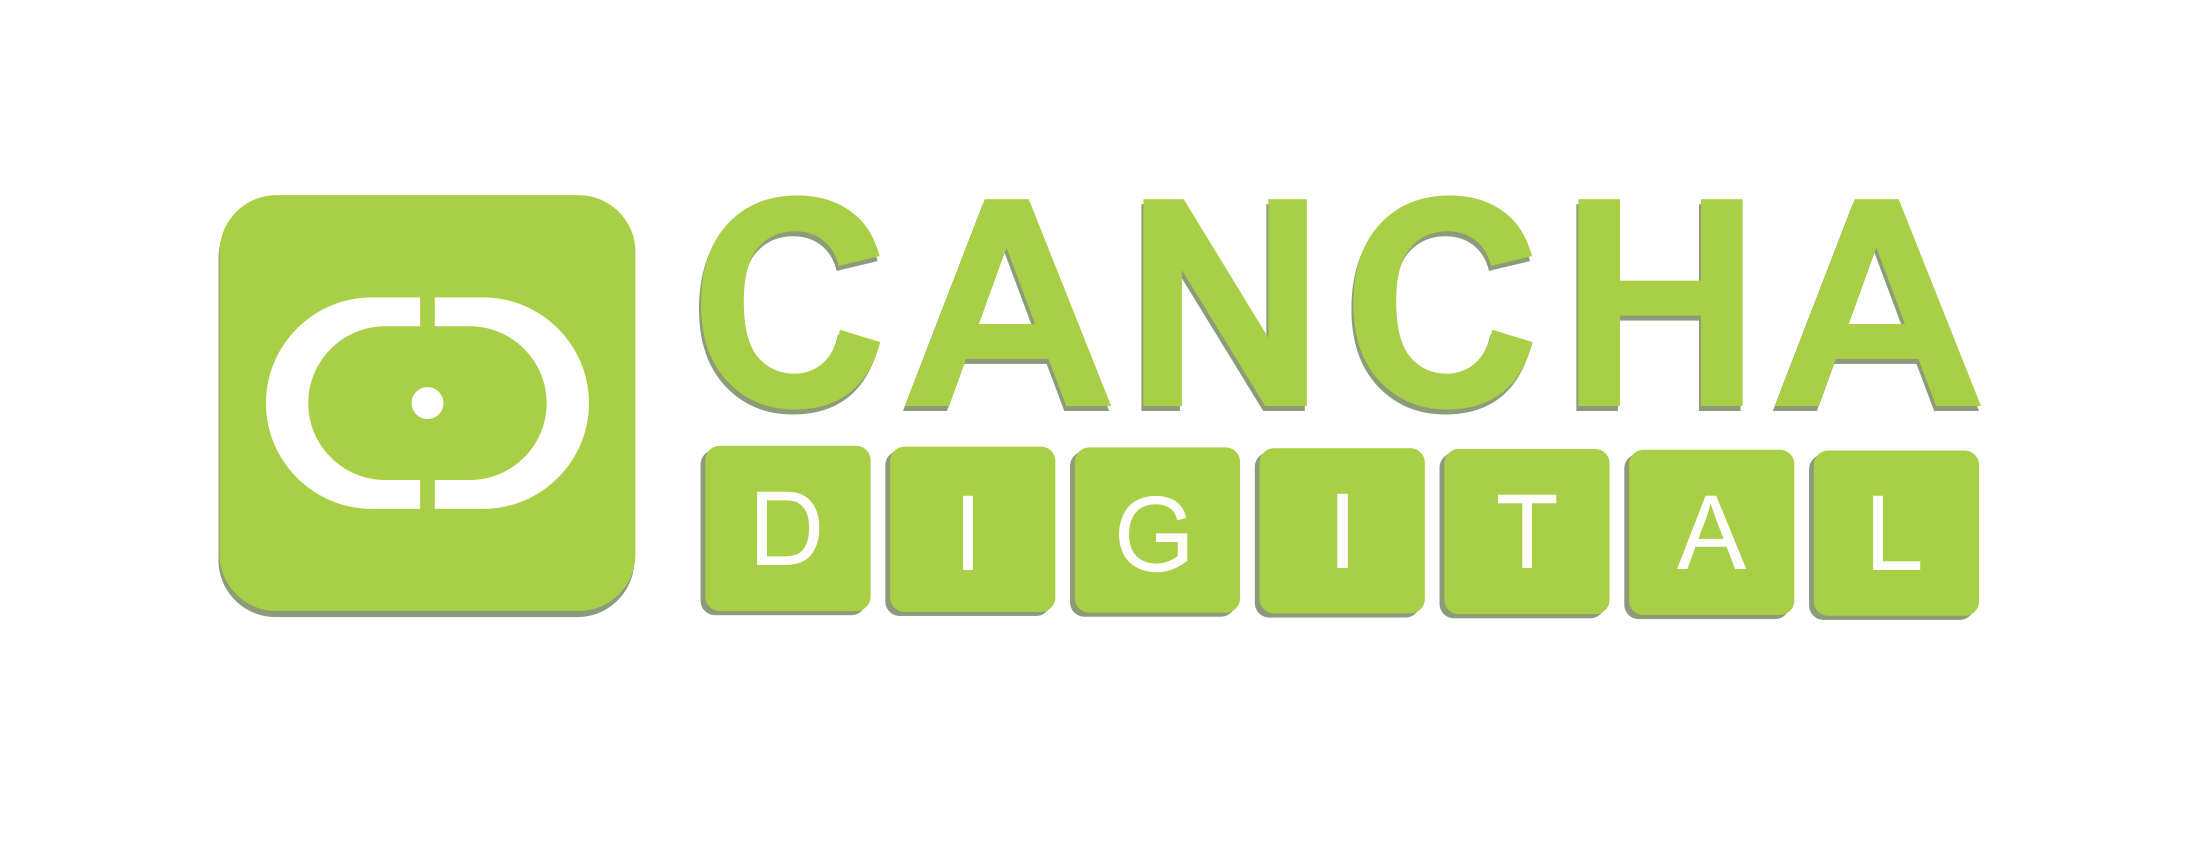 CanchaDigital